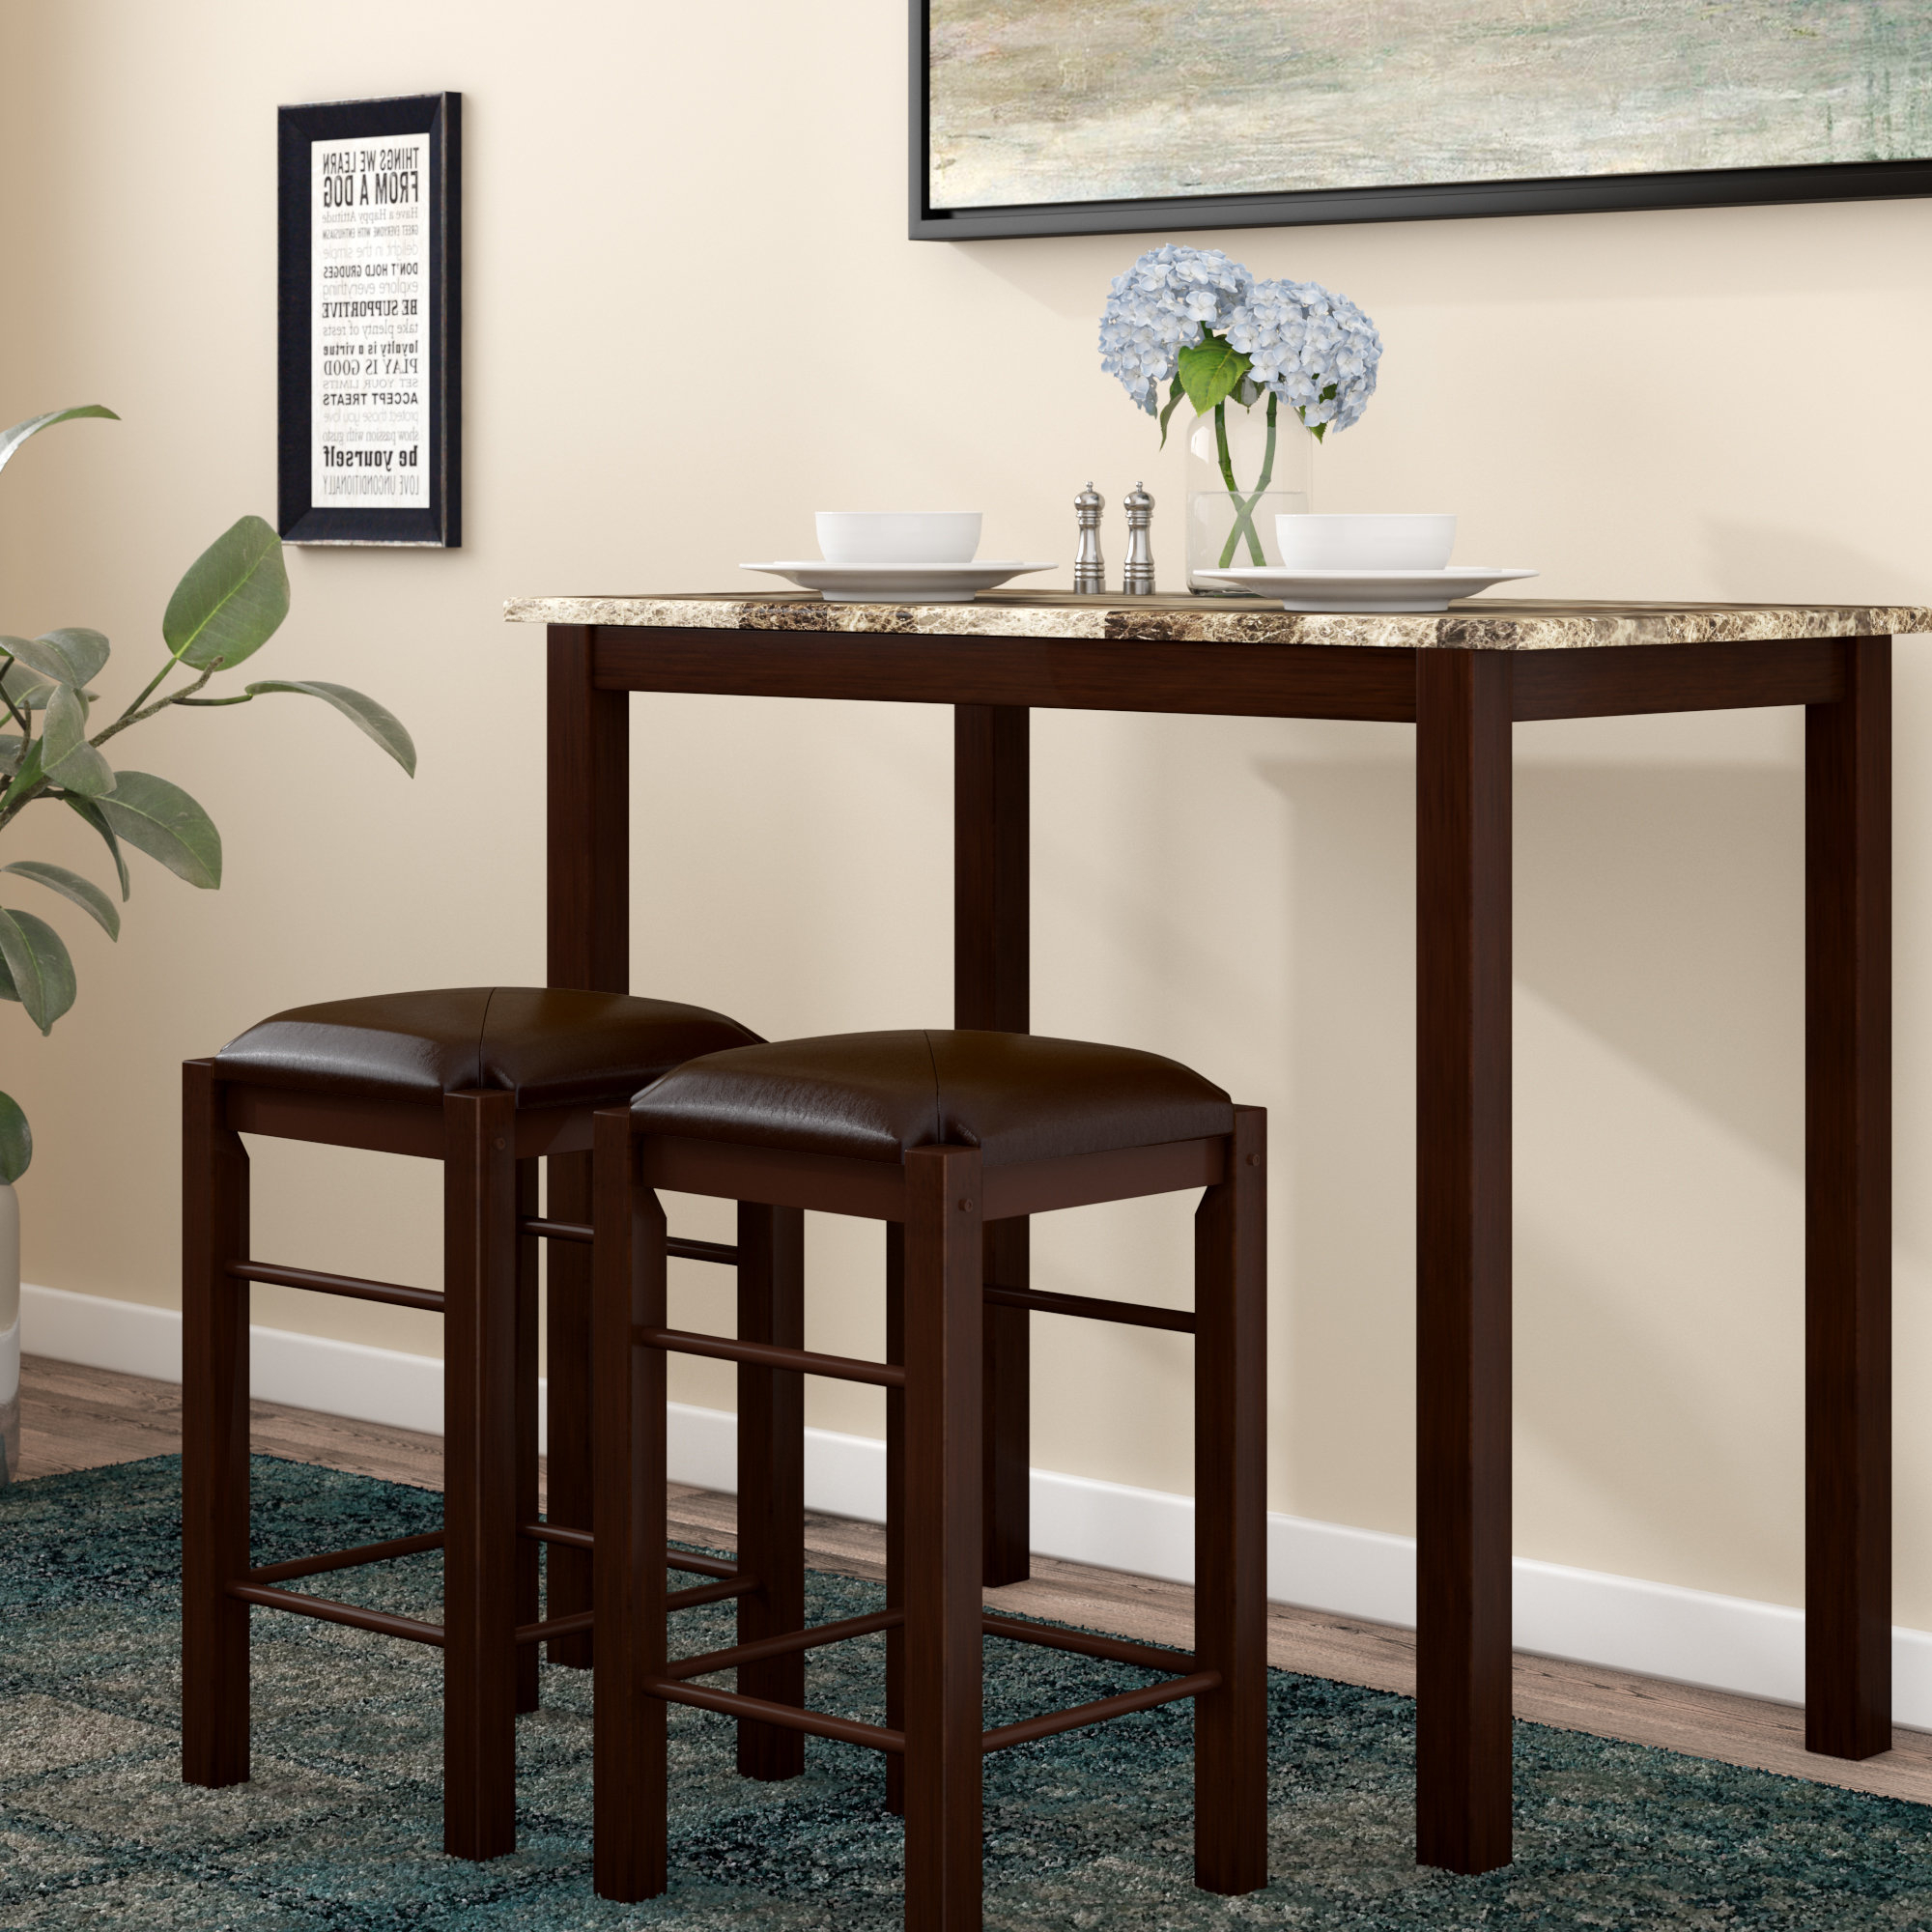 Favorite Penelope 3 Piece Counter Height Wood Dining Set Throughout Lonon 3 Piece Dining Sets (Gallery 6 of 20)